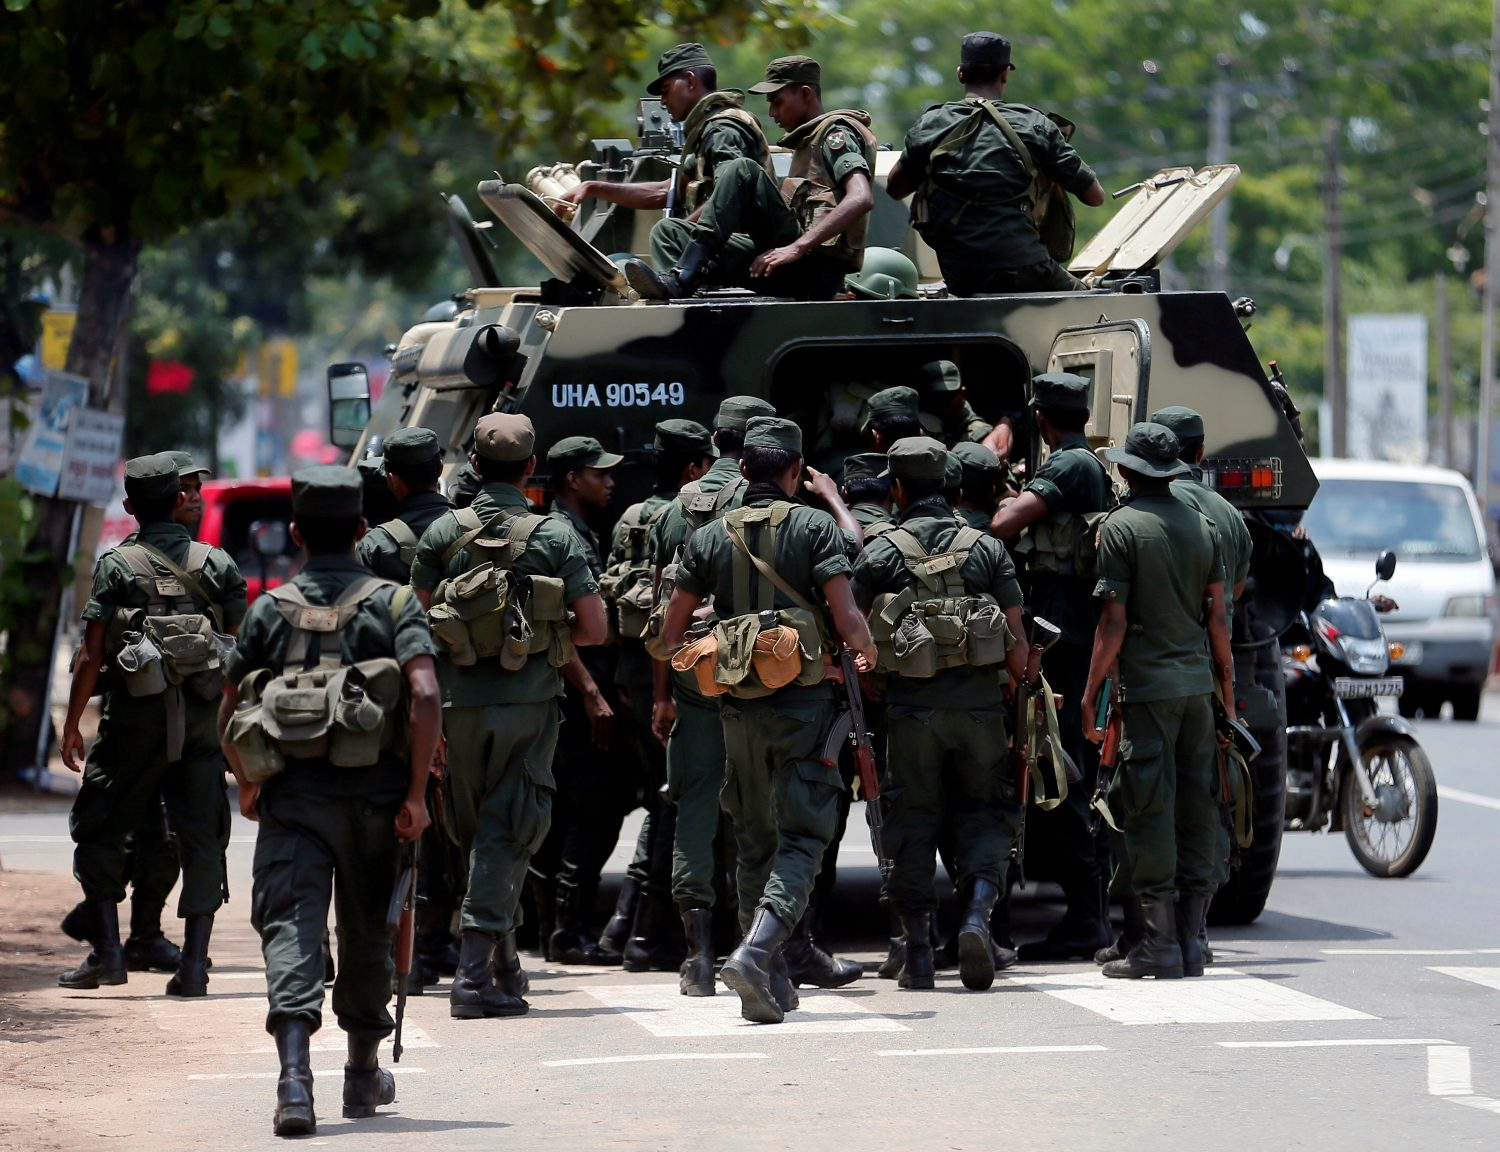 Sri Lankan soldiers patrol a road of Hettipola after a mob attack in a mosque in the nearby village of Kottampitiya, Sri Lanka May 14, 2019. REUTERS/Dinuka Liyanawatte